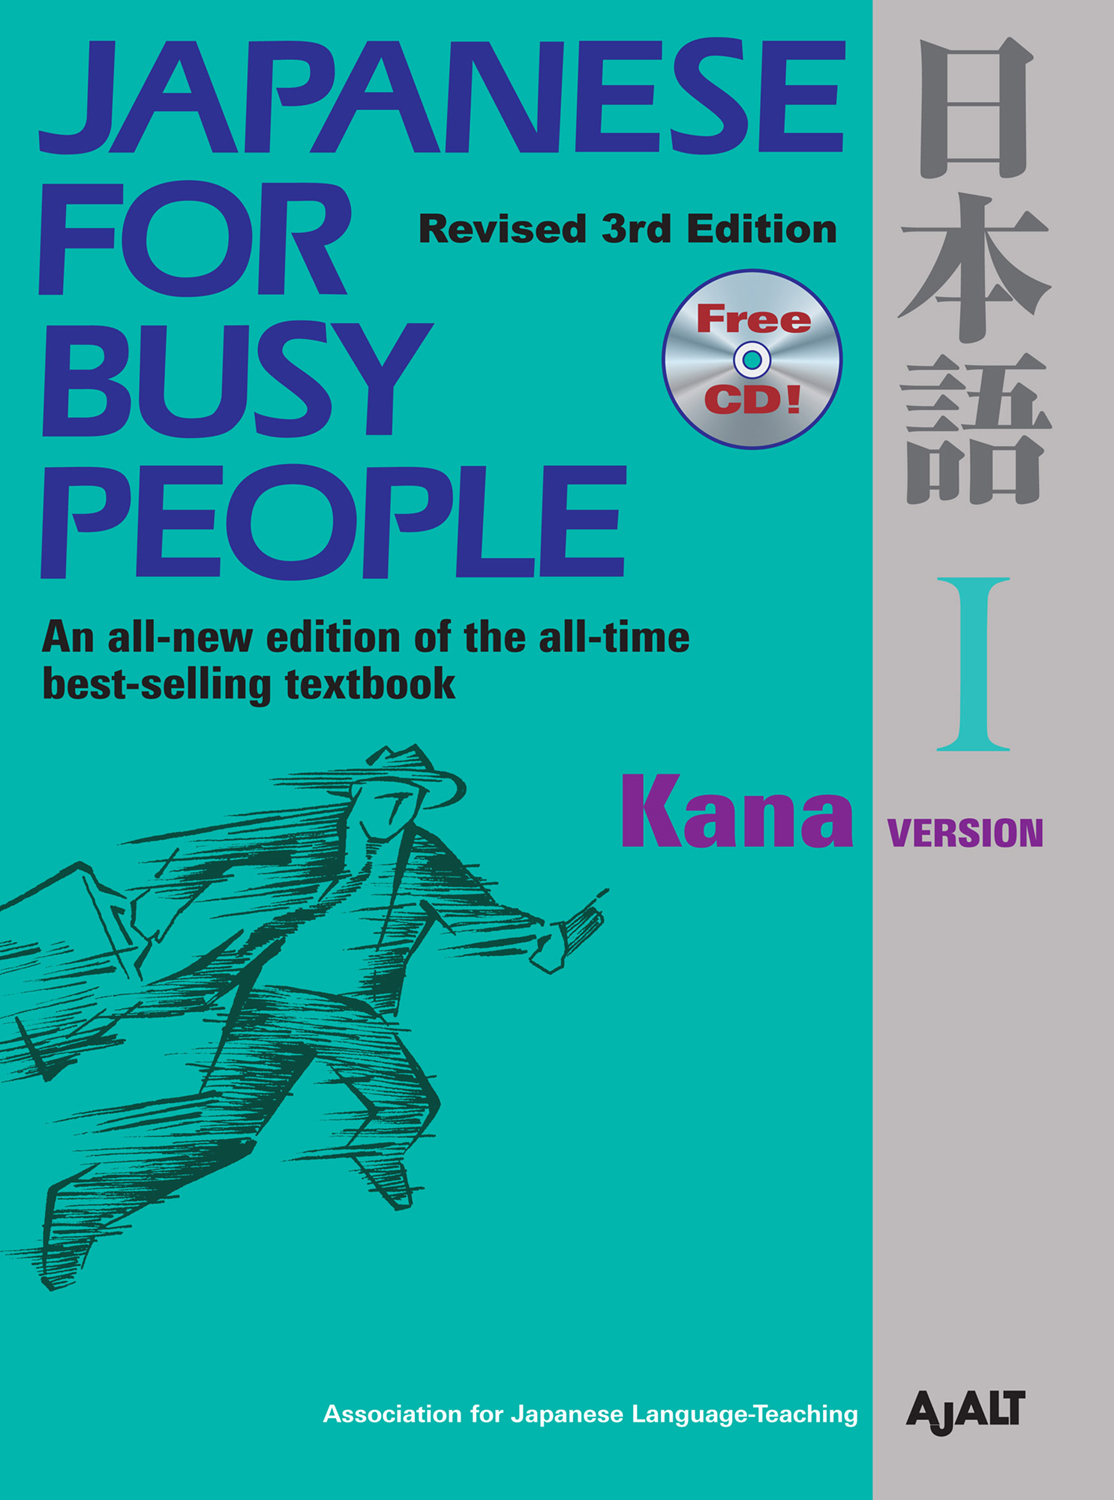 Cover of Japanese for Busy People Revised 3rd Edition I (Kana Version): An all-new edition of the all-time best-selling textbook.